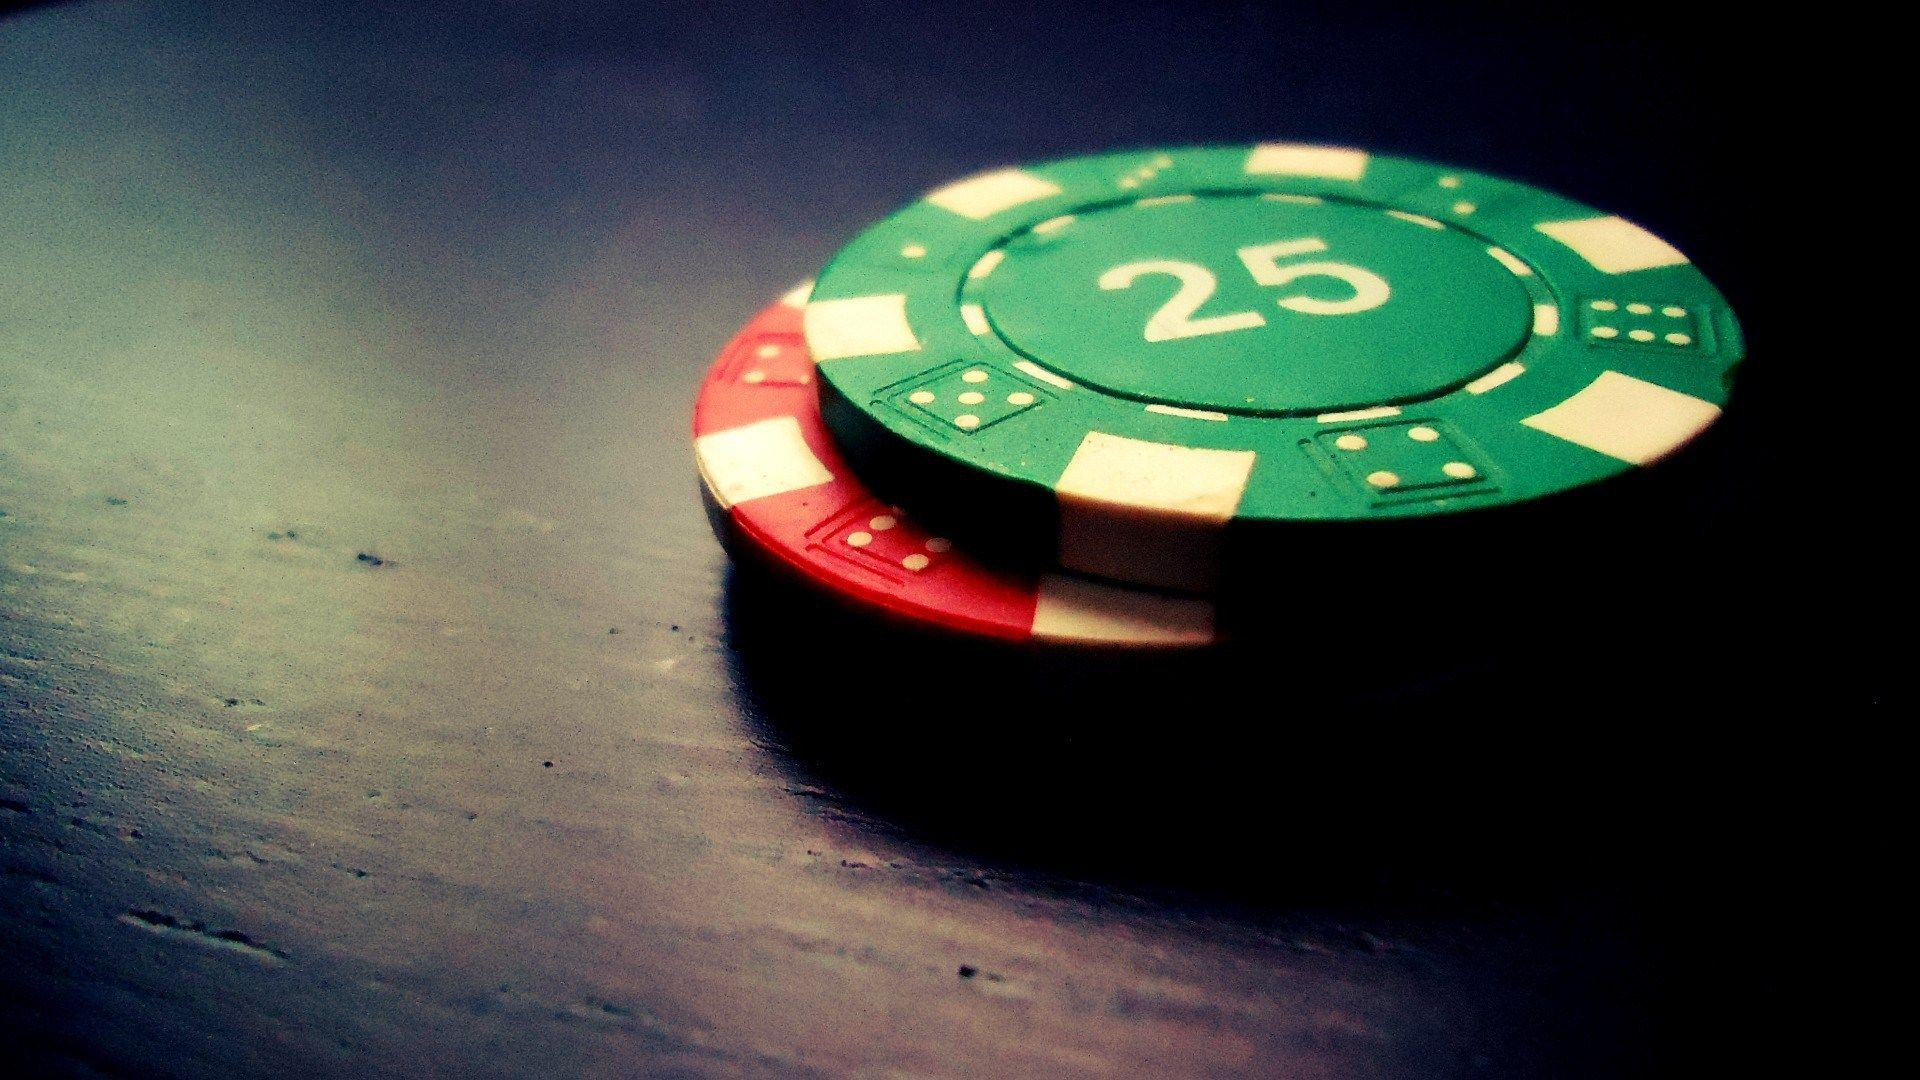 What makes poker games so convenient?